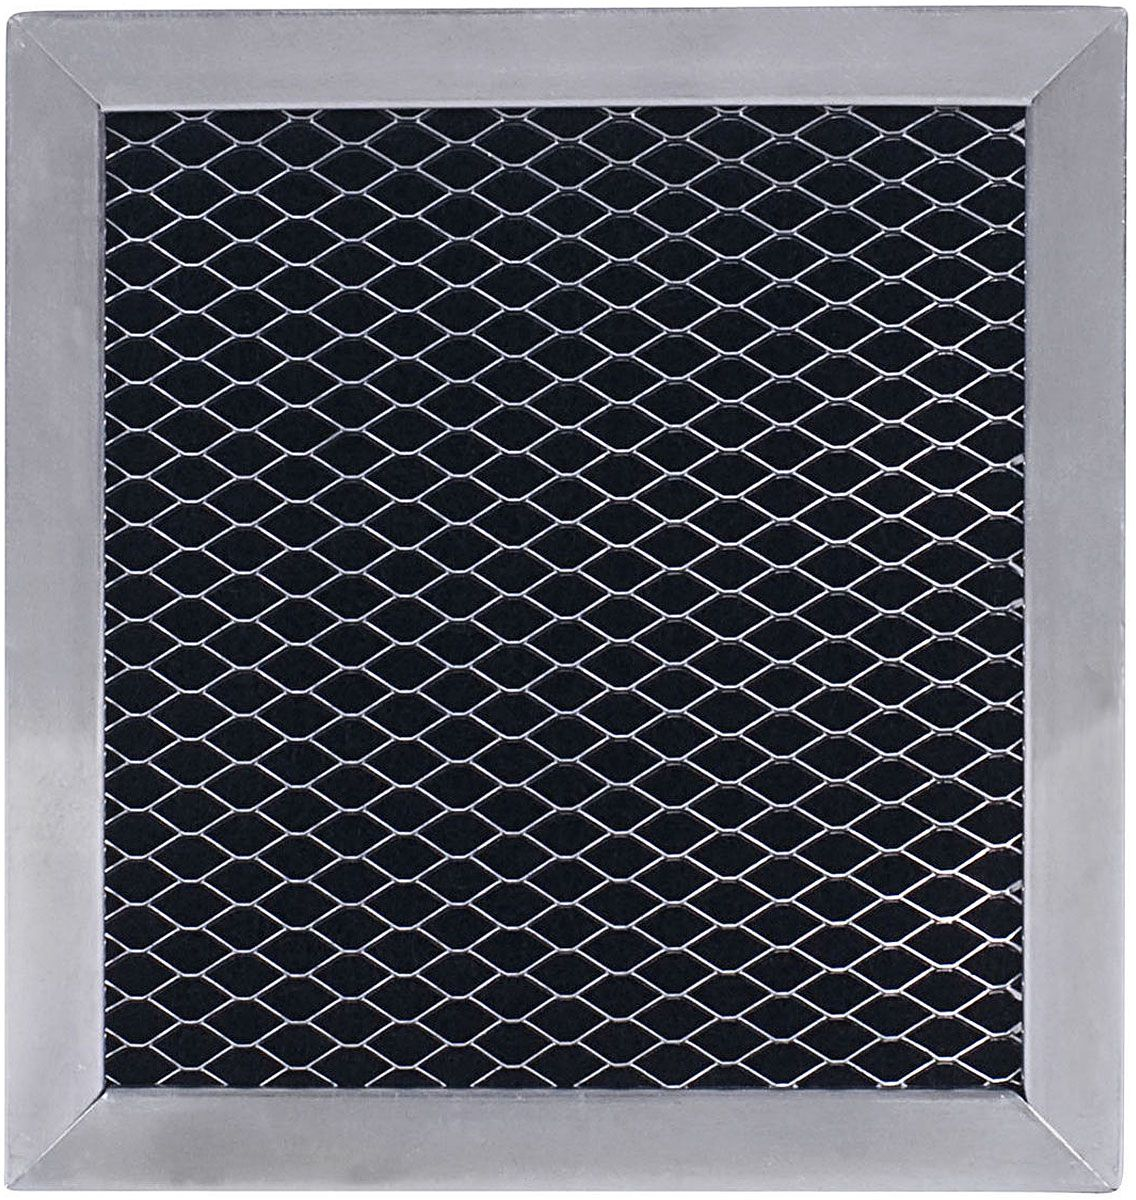 2 PACK - 8206230A MICROWAVE HOOD CHARCOAL REPLACEMENT FILTER WHIRLPOOL